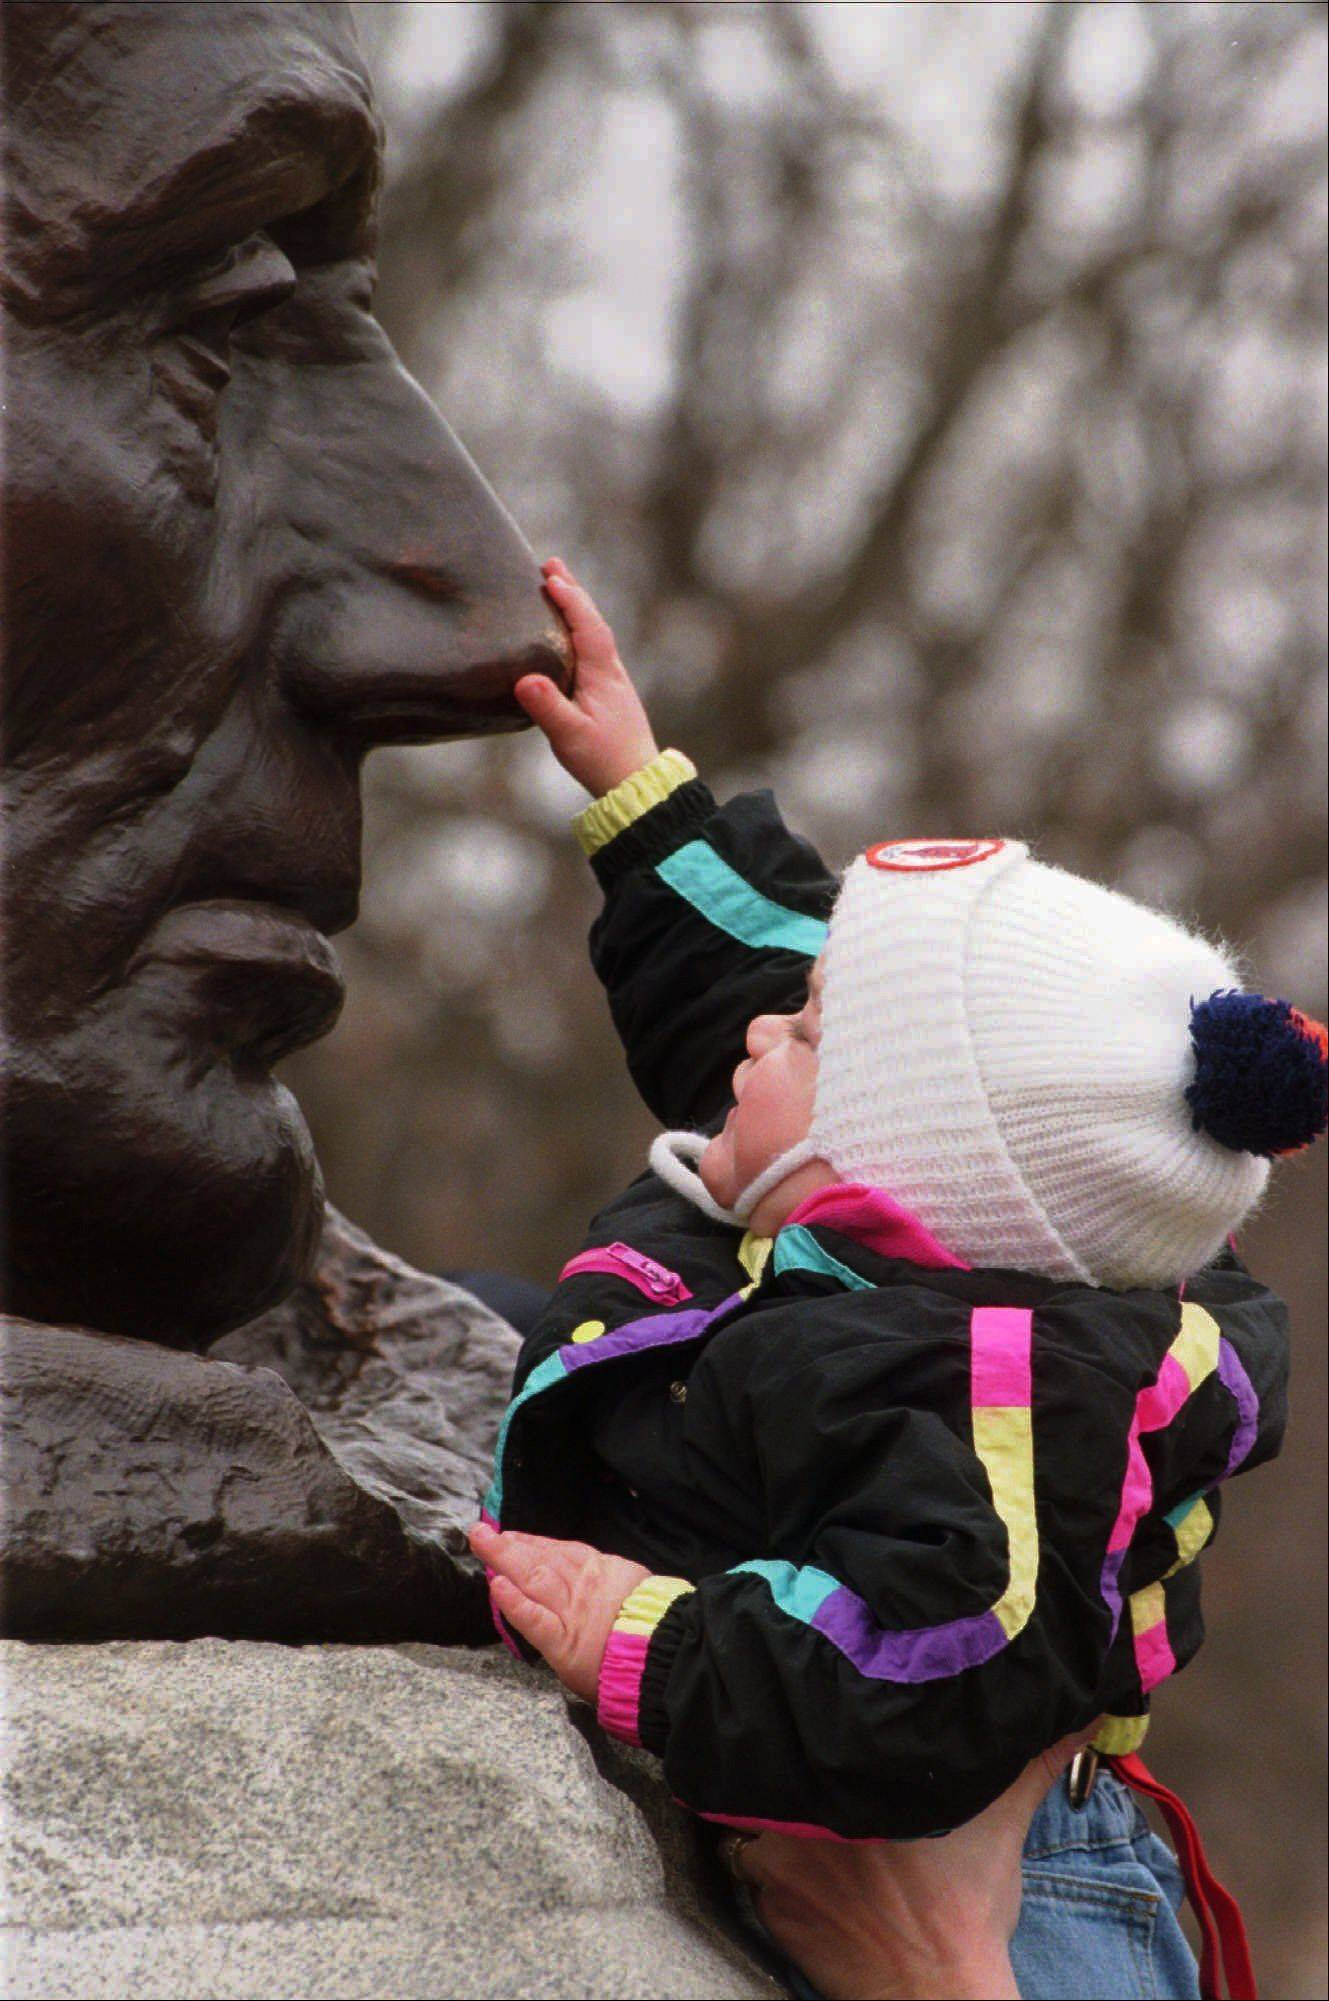 A youngster stretches to rub the nose of Abraham Lincoln, for good luck as tradition has it, while attending Lincoln's Tomb in Springfield.